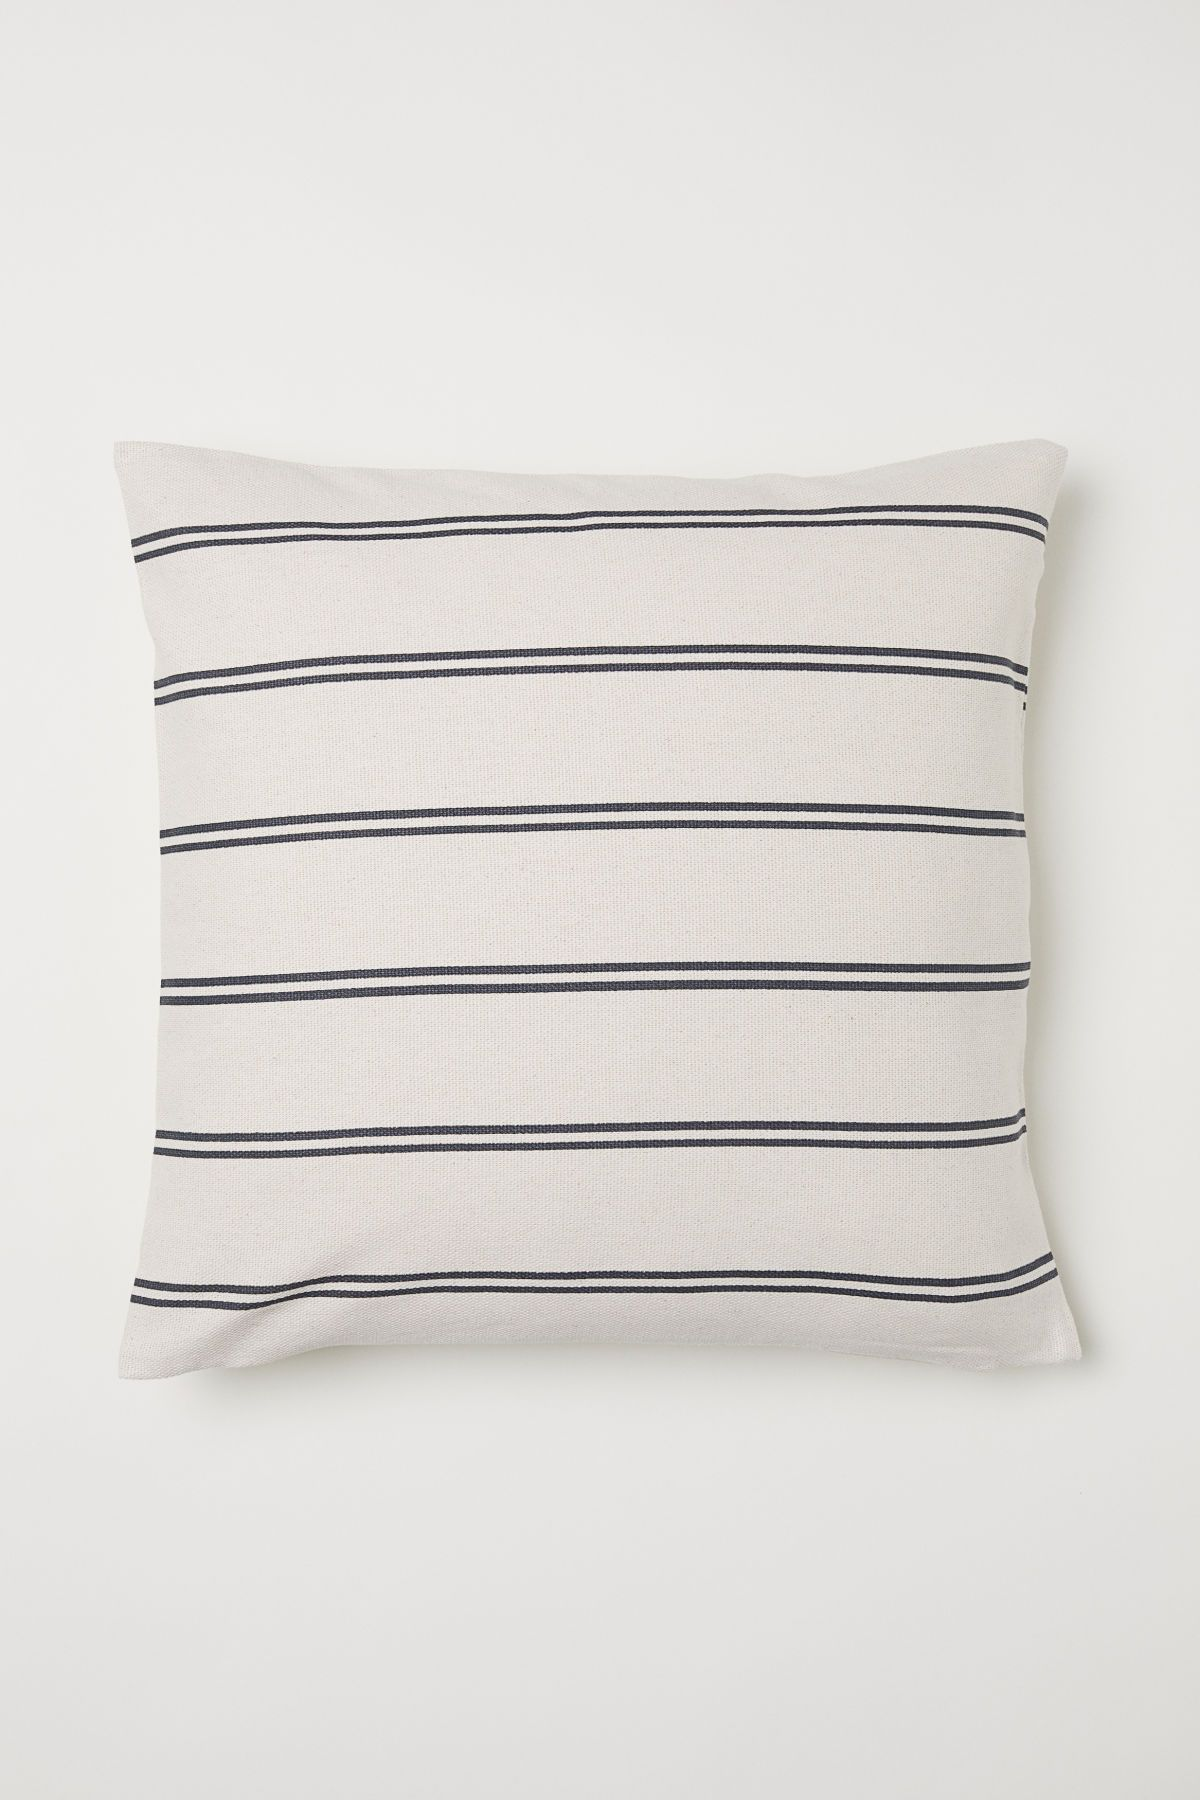 Natural Whitegray Striped Conscious Cushion Cover In Woven Organic Cotton